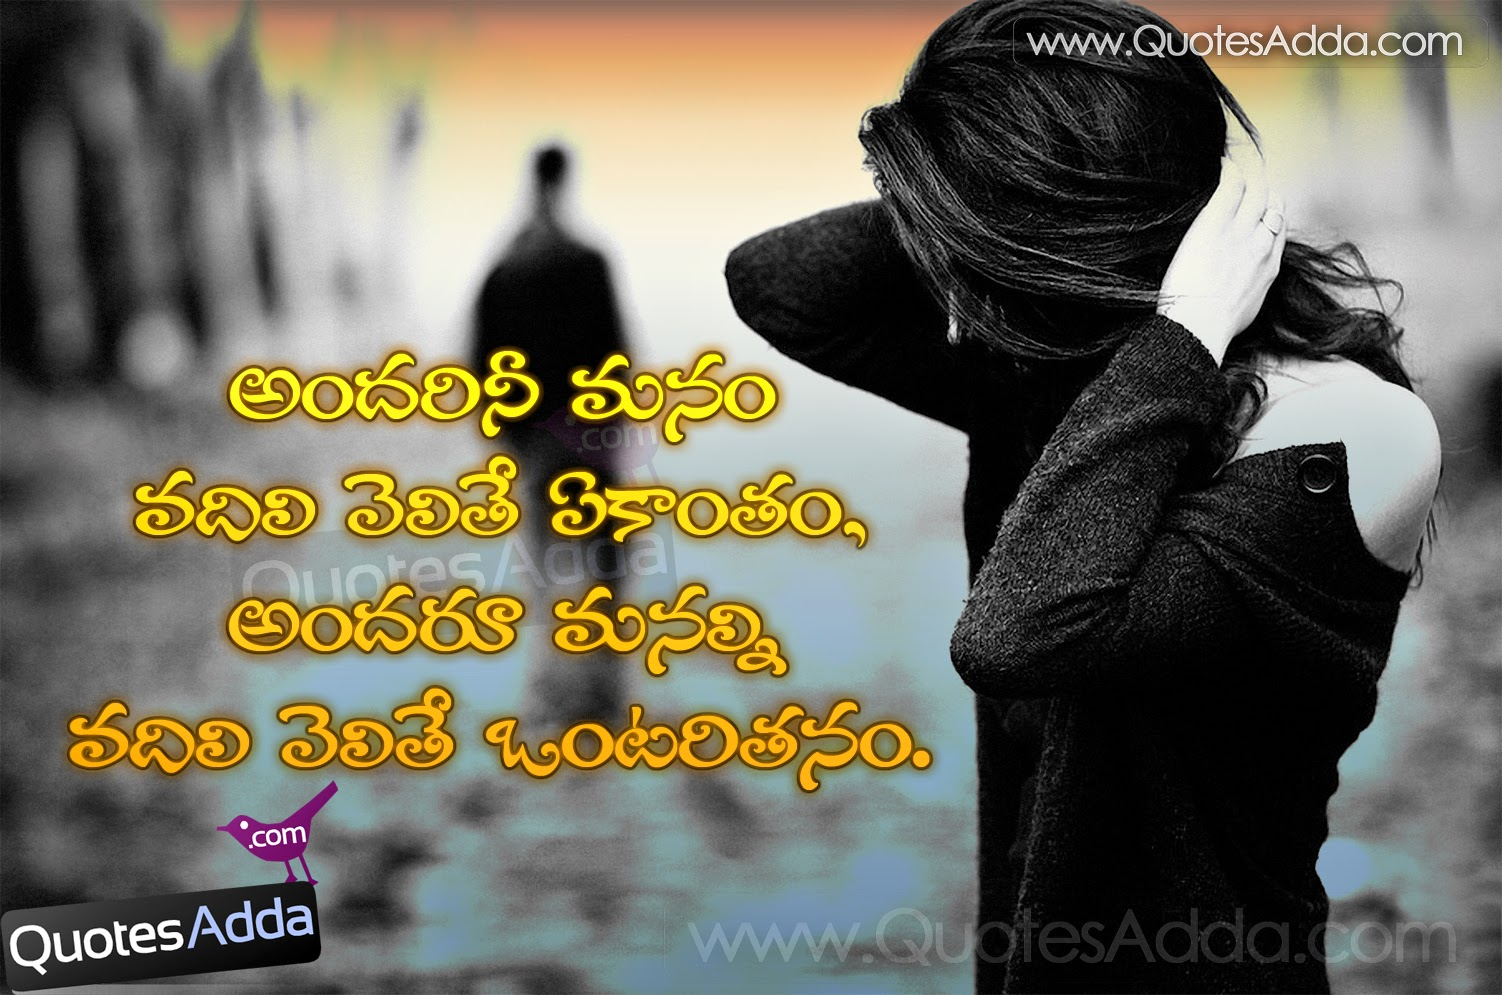 Sad Quotes About Love And Pain In Telugu : Tamil Sad Love Quotes New telugu alone quotes